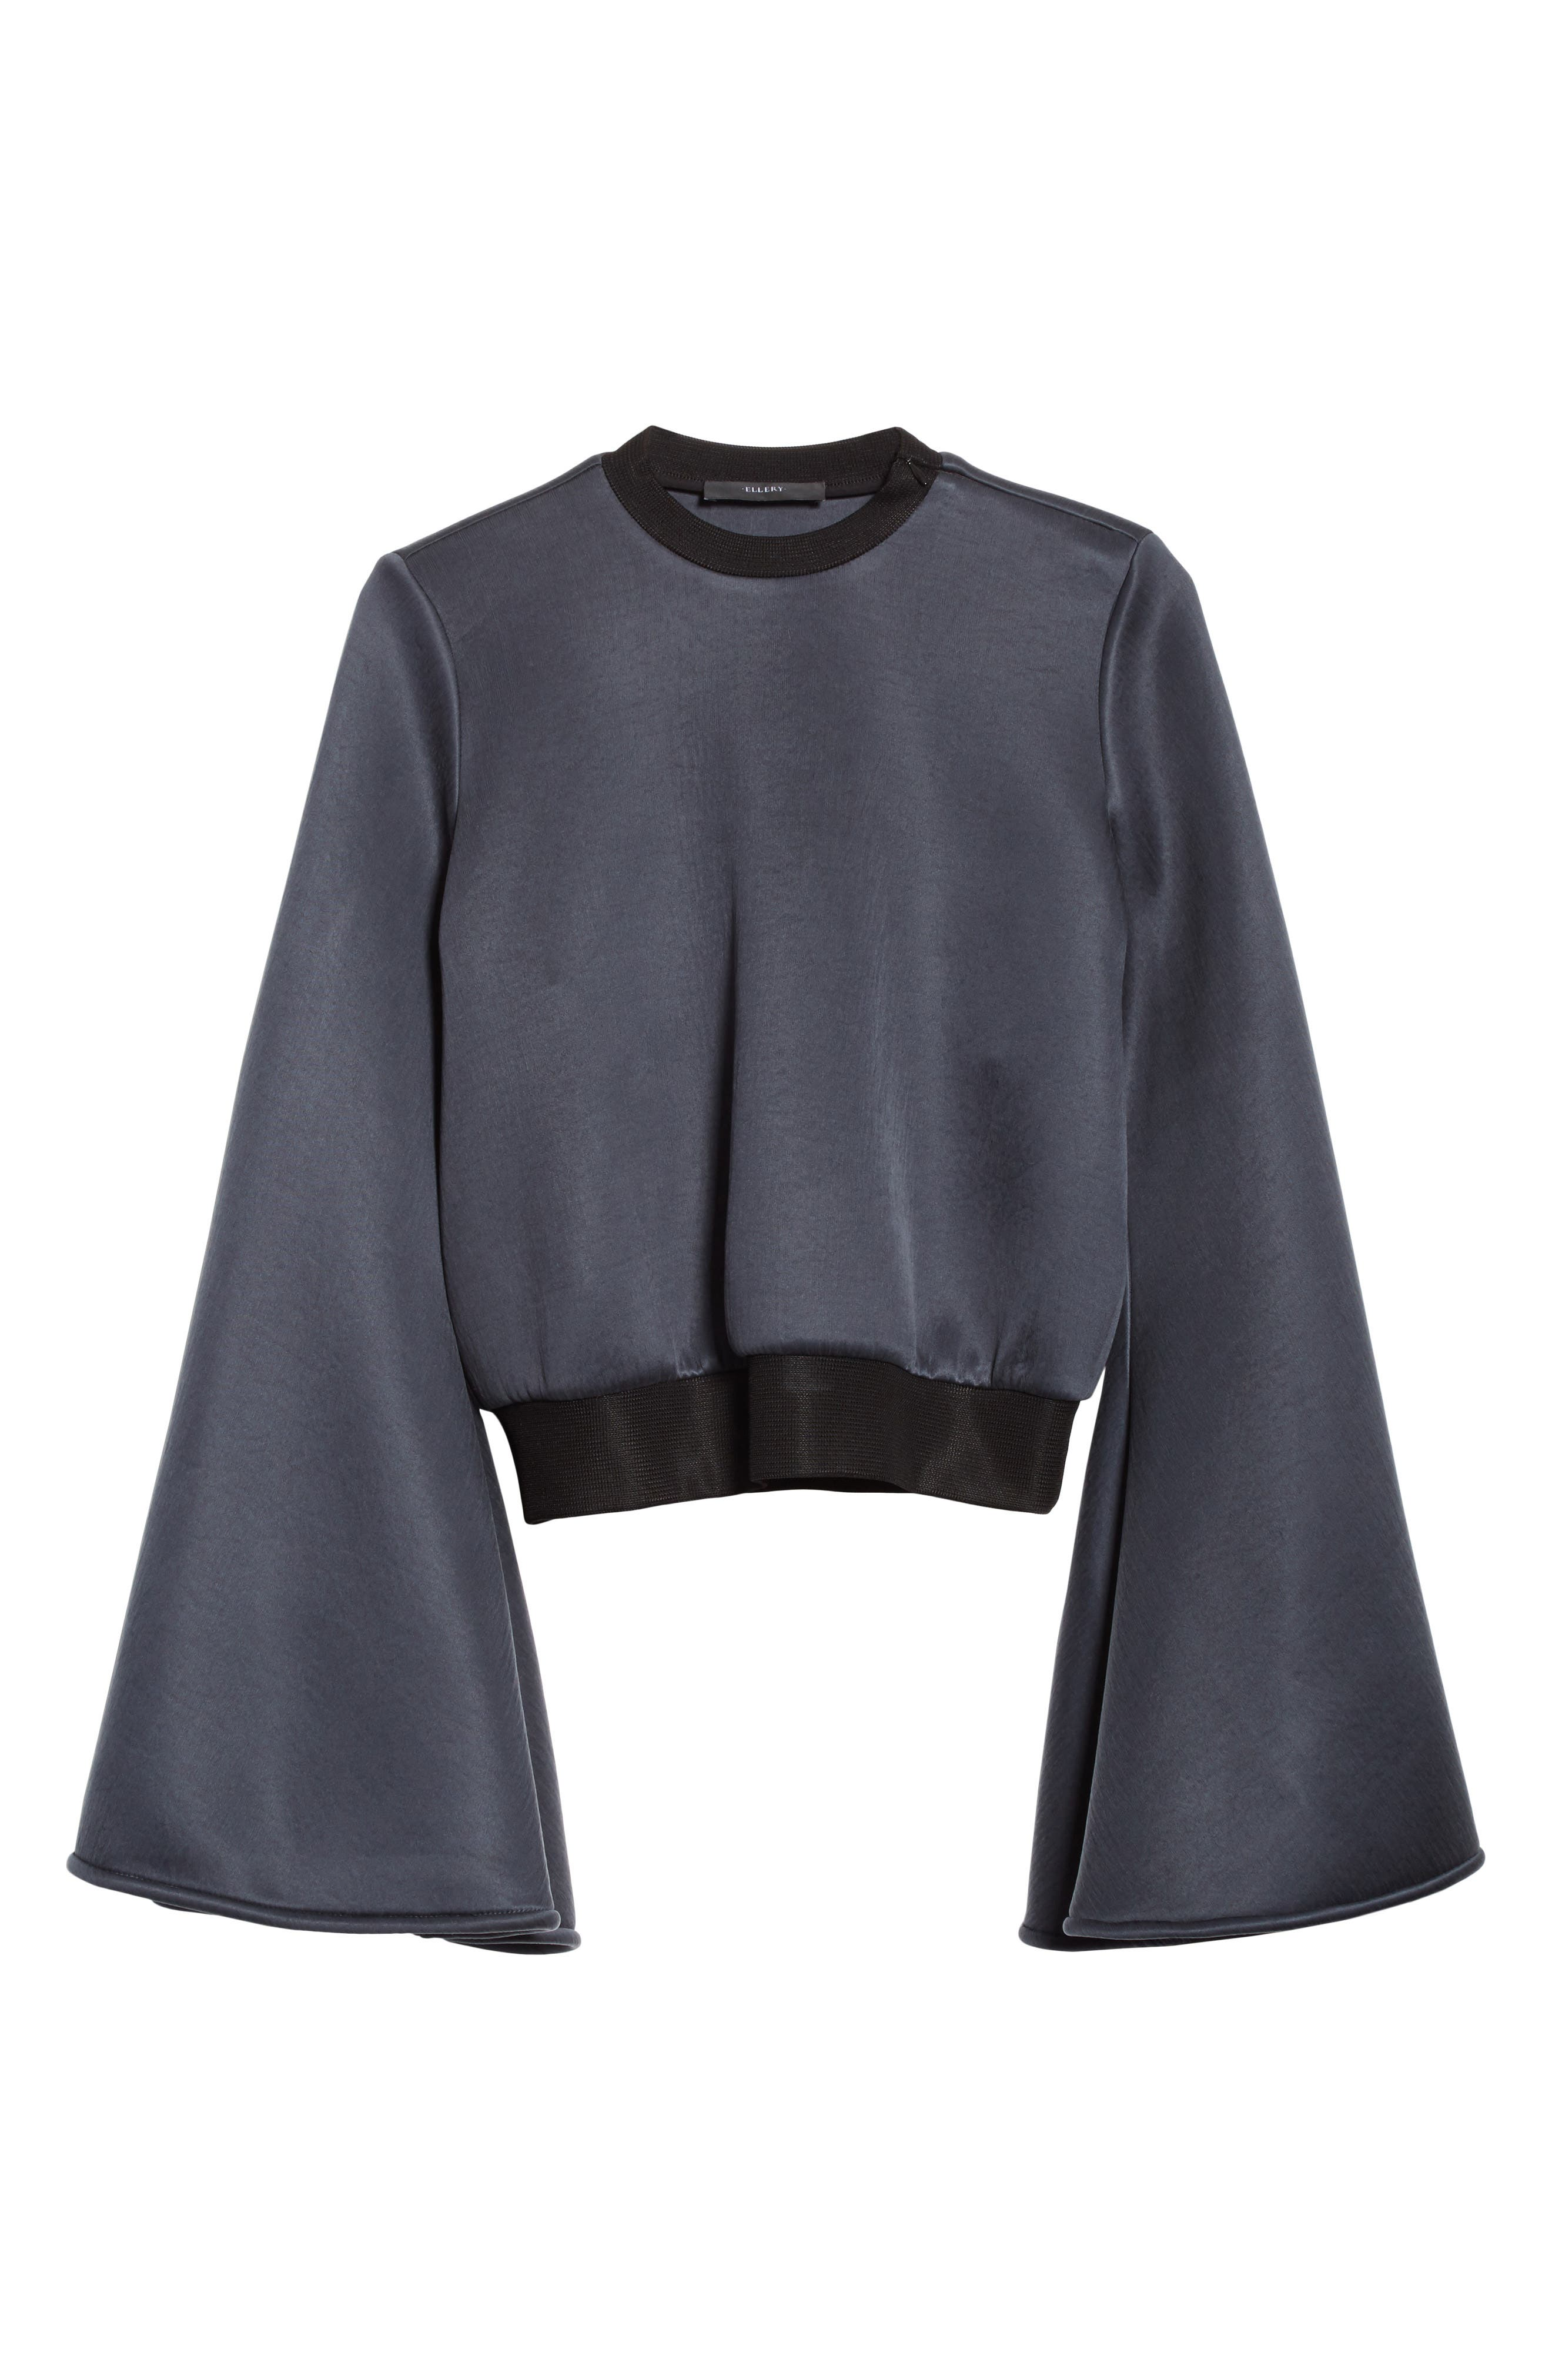 Immortal Flare Sleeve Sweater,                             Alternate thumbnail 4, color,                             Charcoal Navy